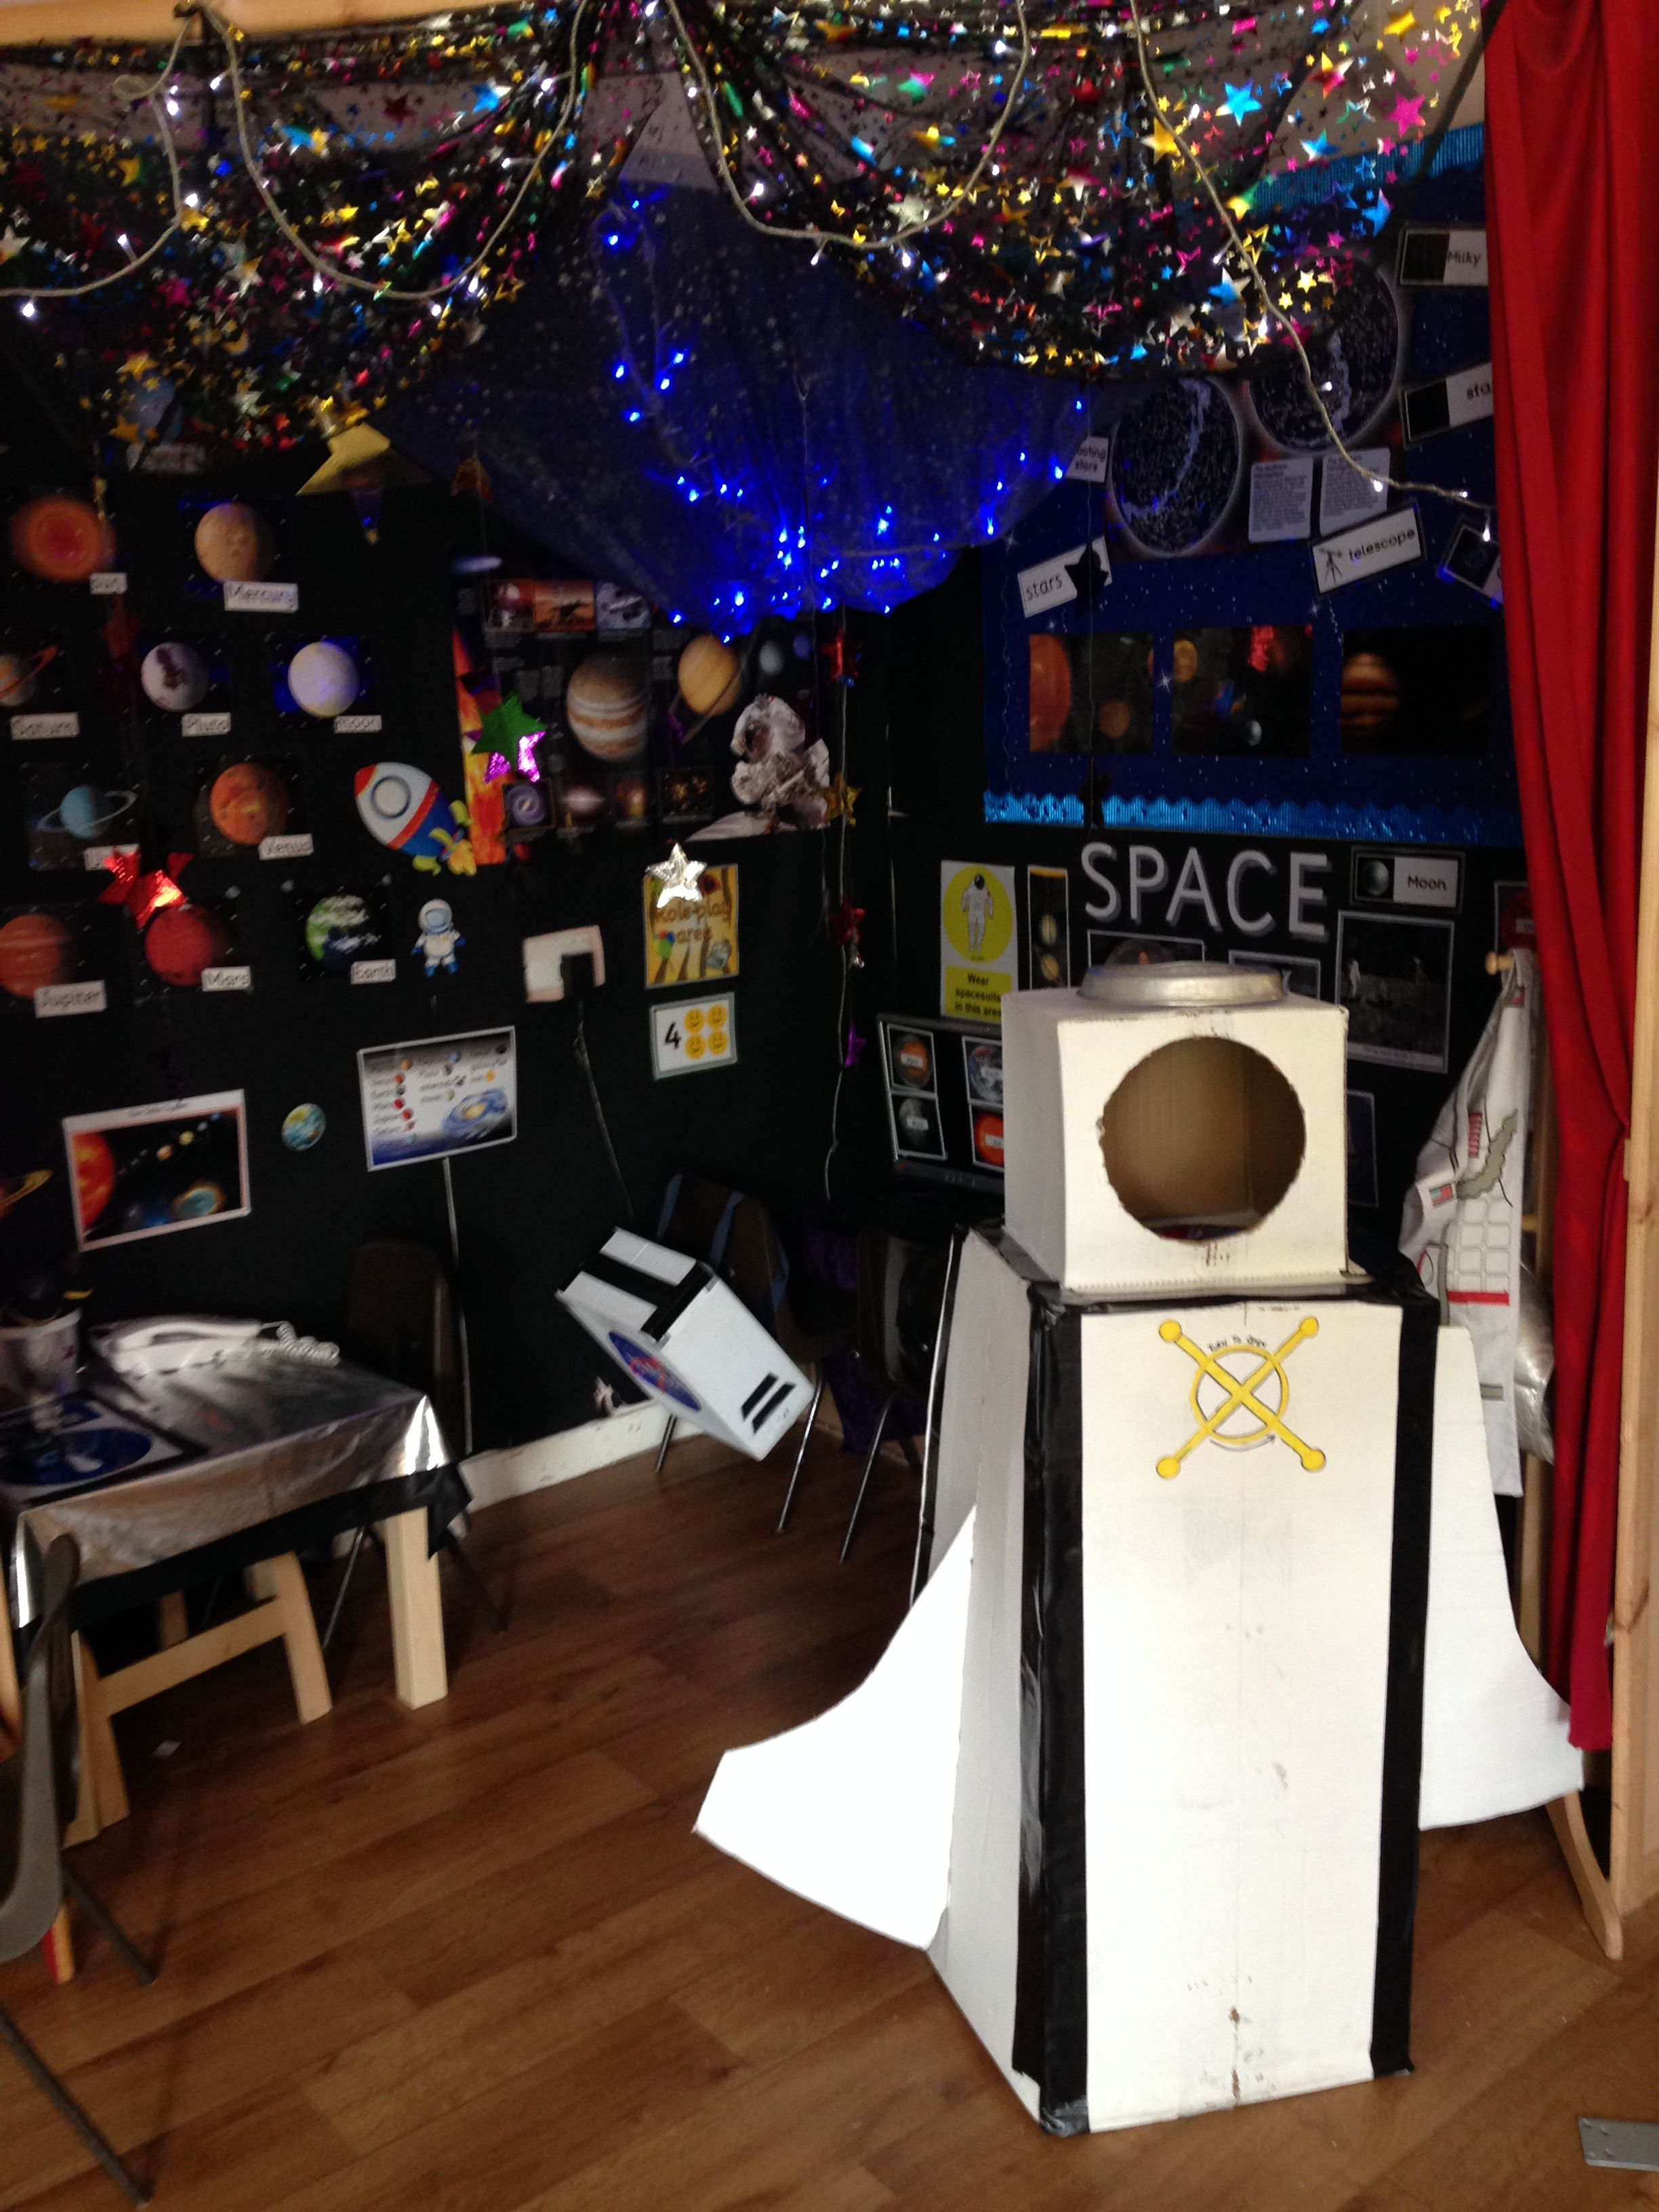 Space Station Rocket Role Play Area In Reception